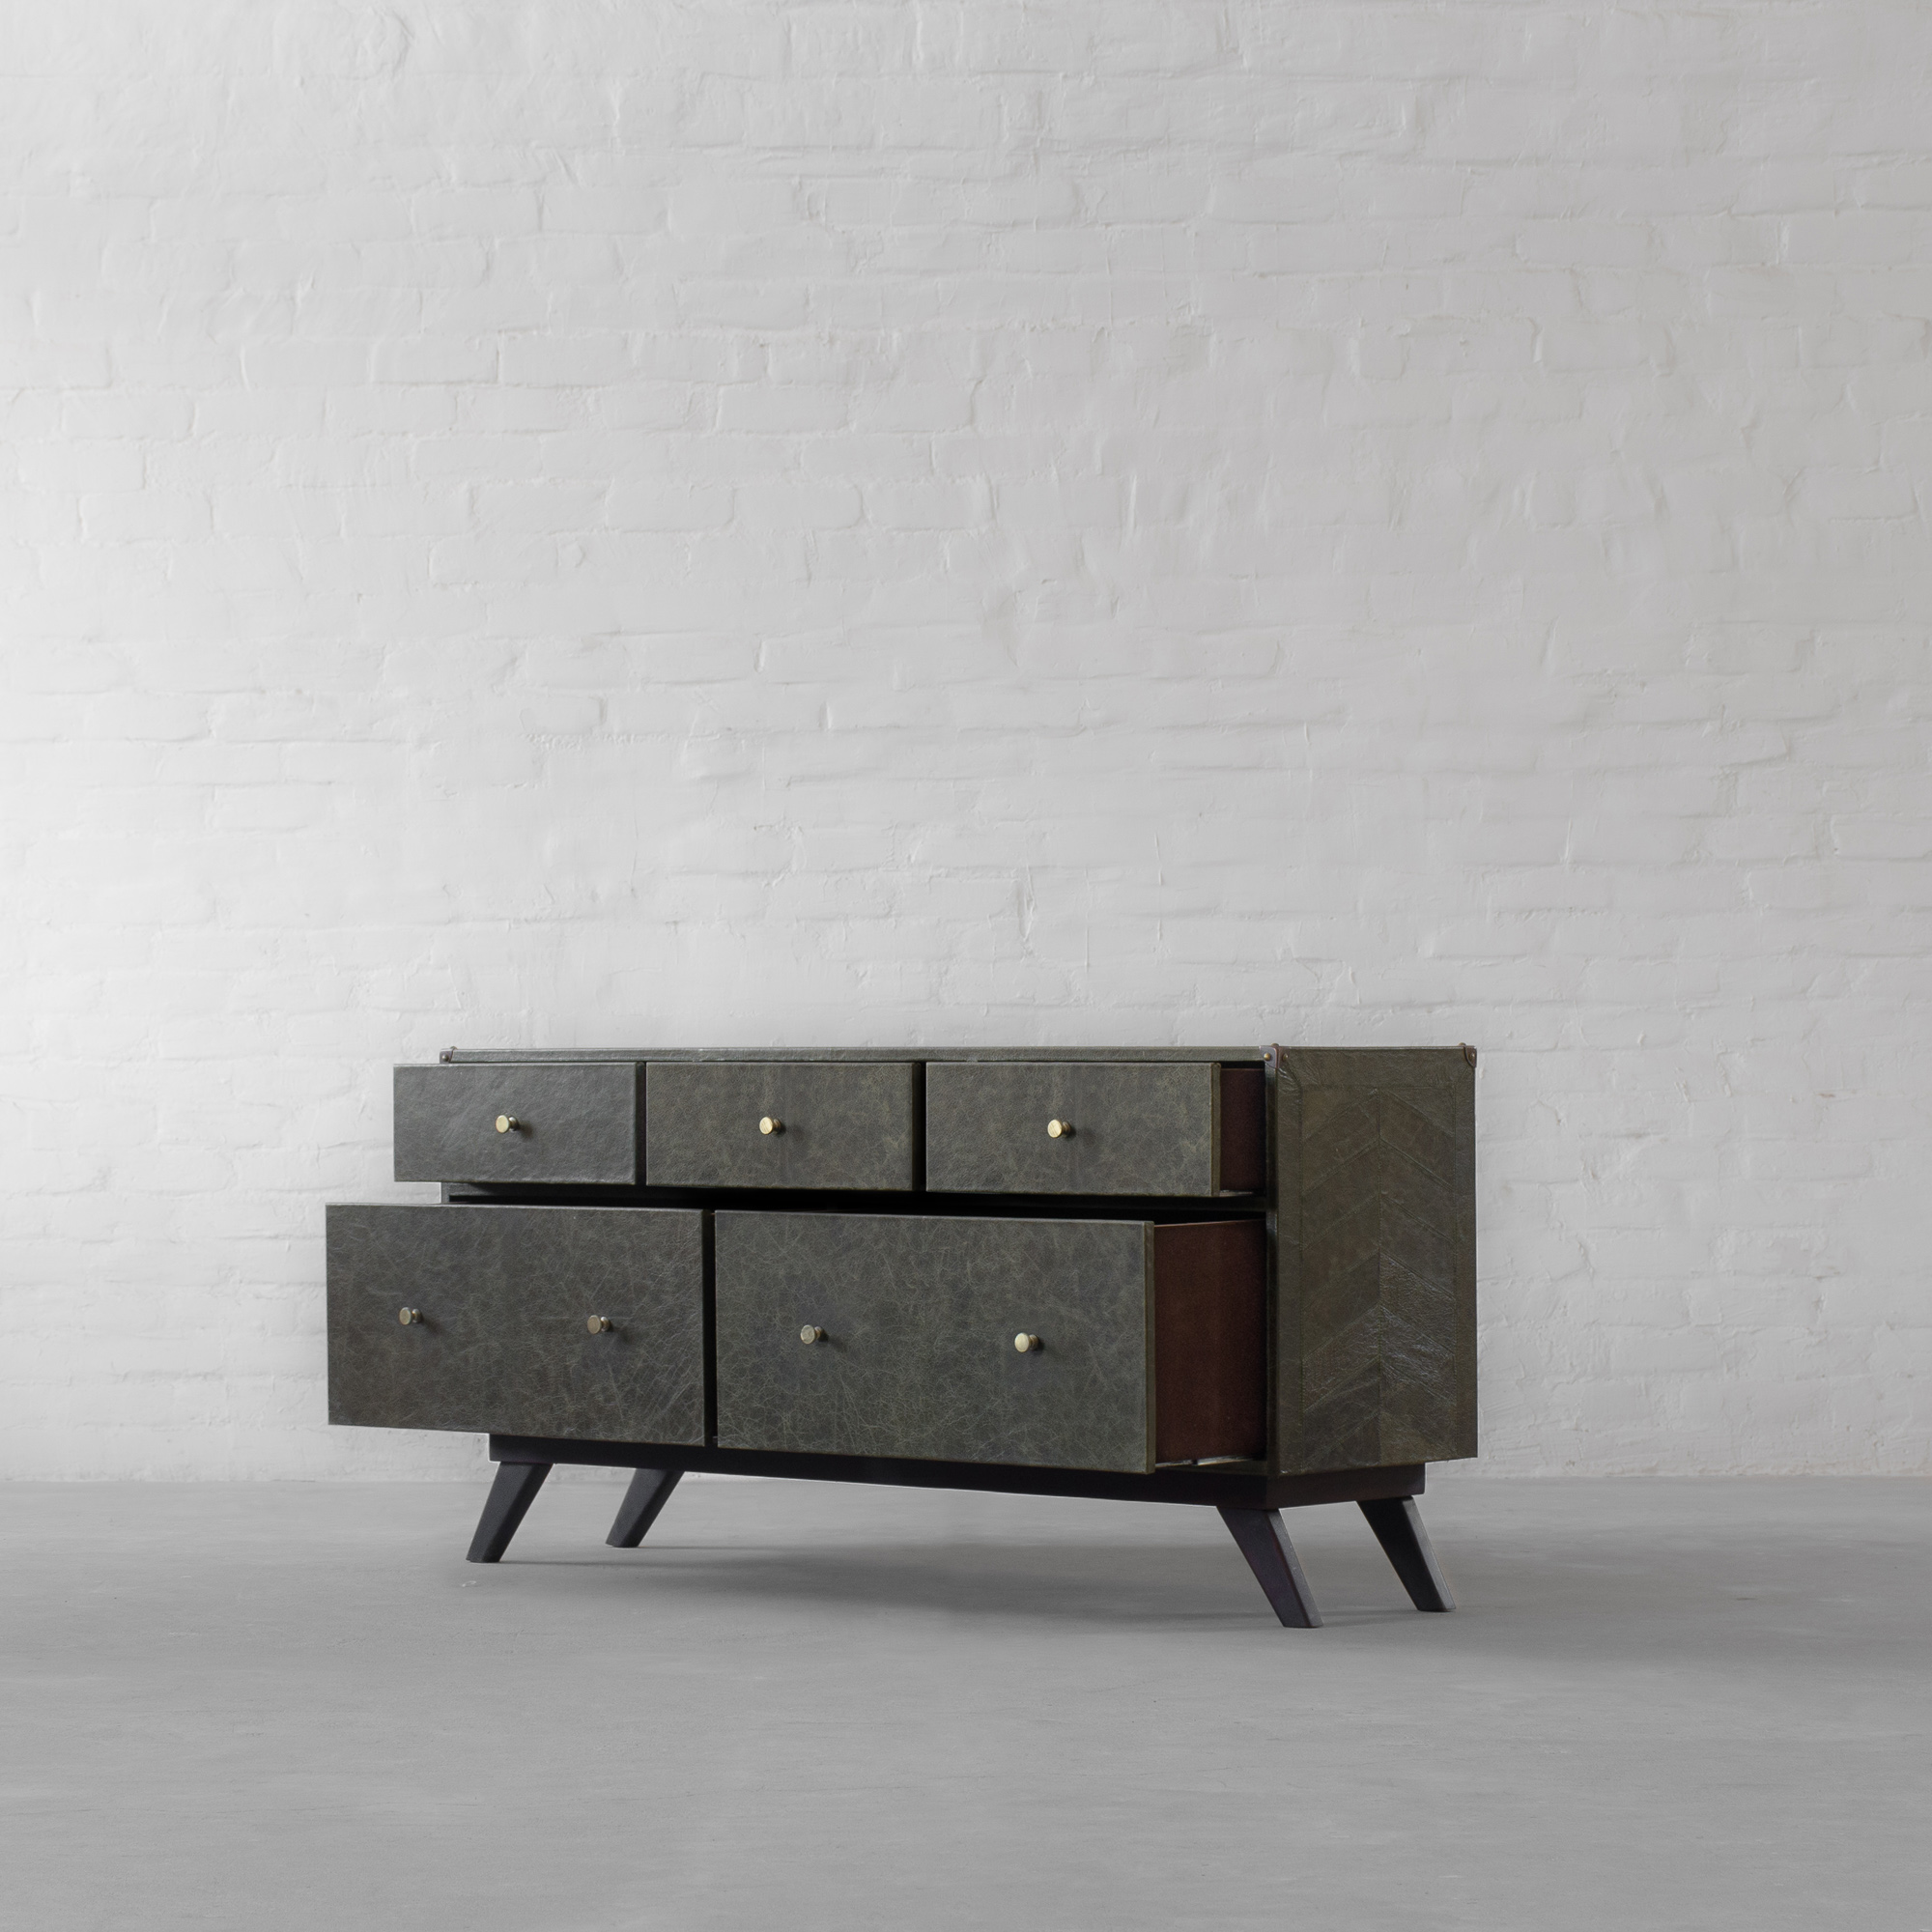 Colaba Leather Clad Chest of Drawers